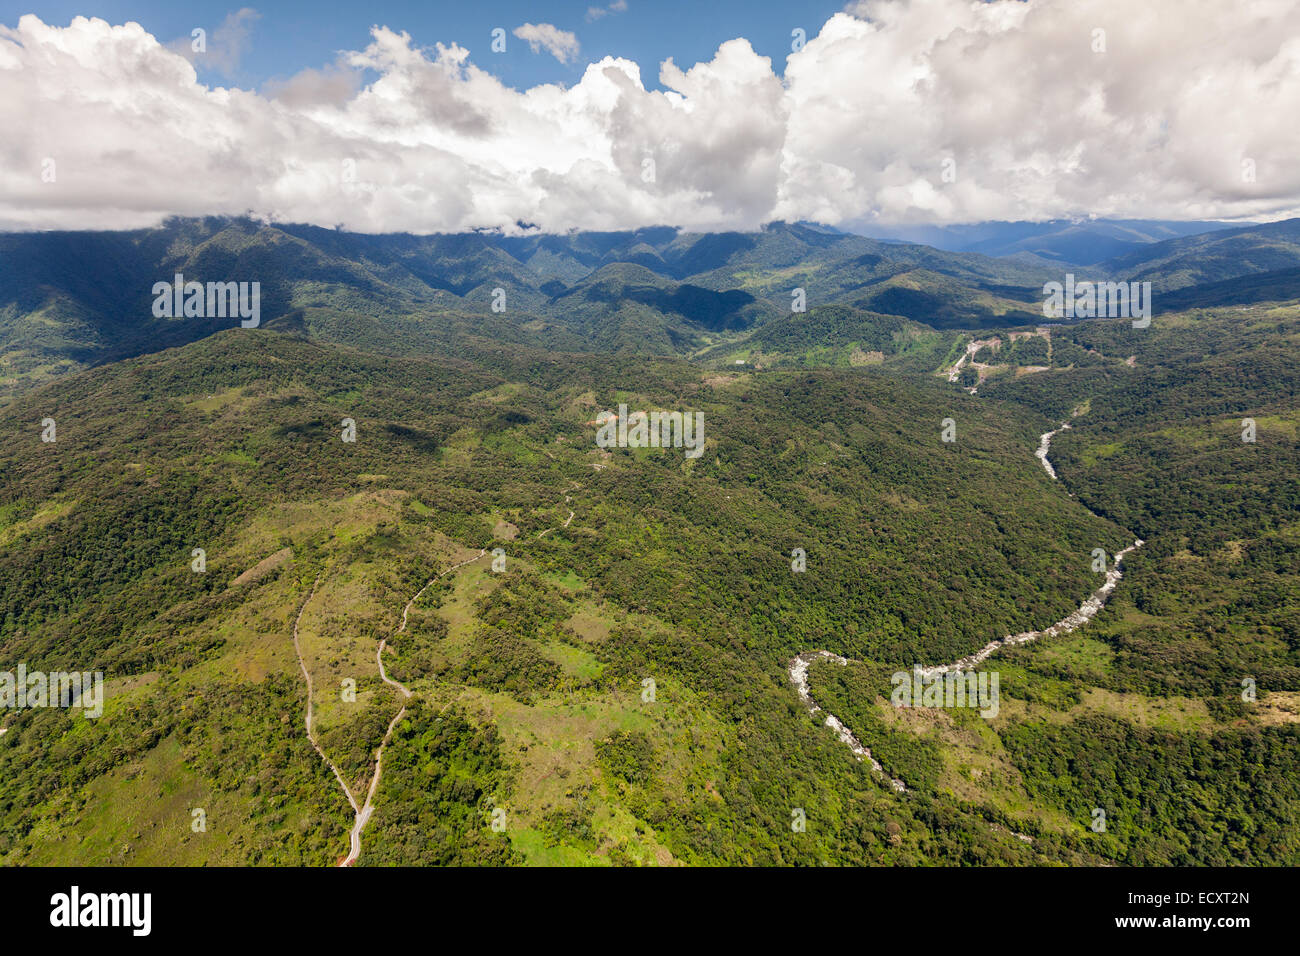 Llanganates National Park And Topo River Tungurahua Province Ecuador High Altitude Full Size Helicopter Shot - Stock Image